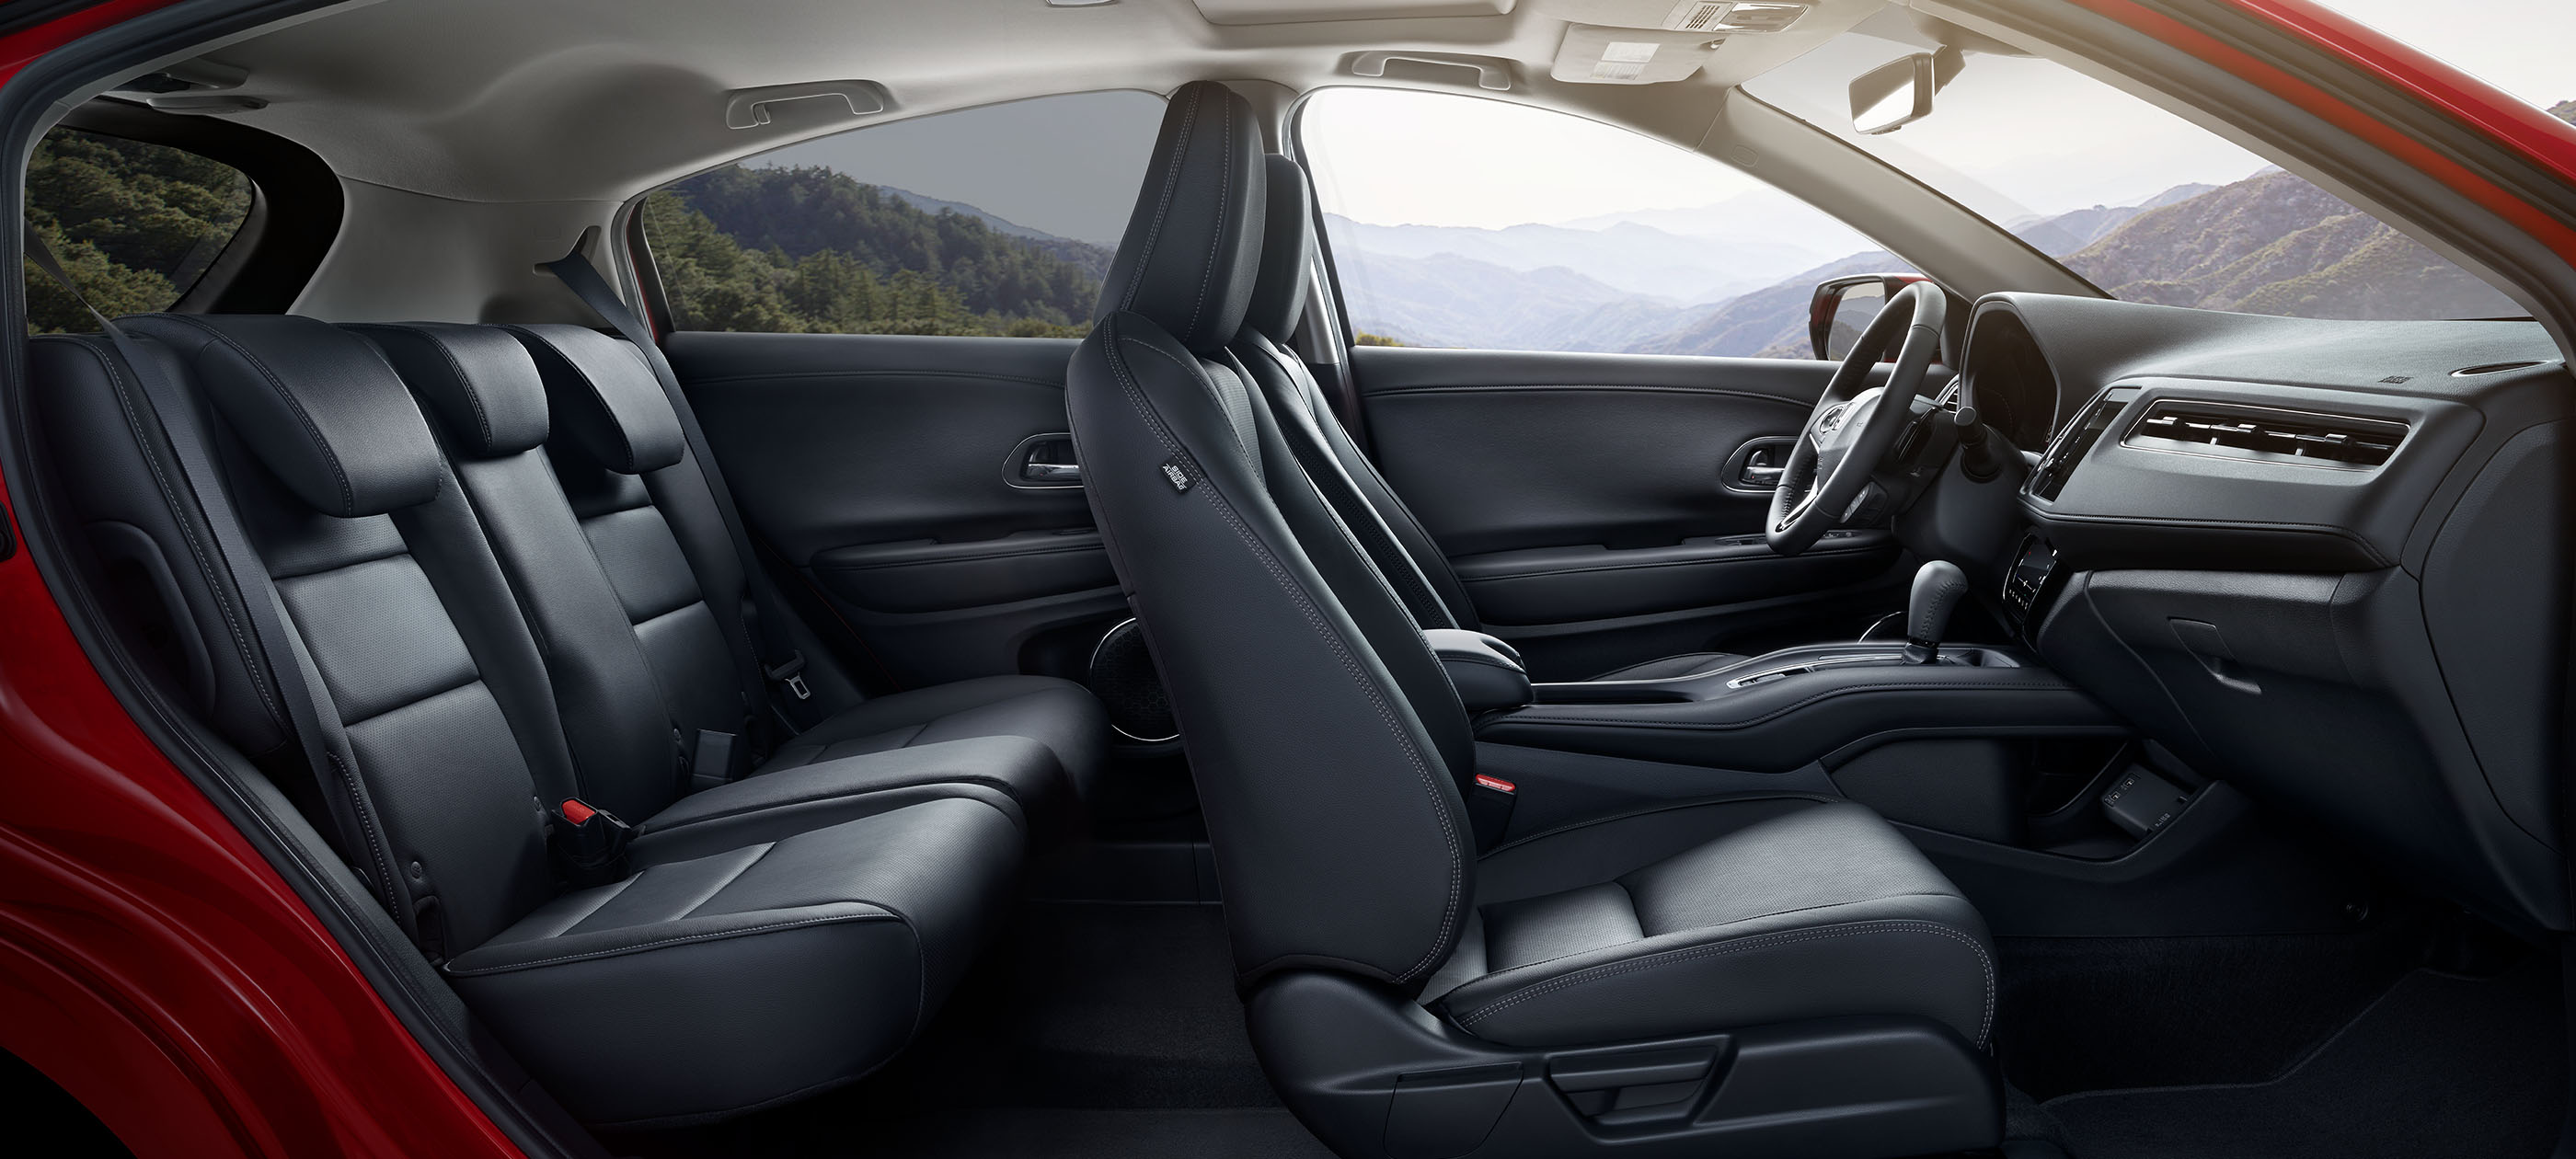 Interior cutaway illustration of the expansive legroom space inside the 2020 Honda HR-V.